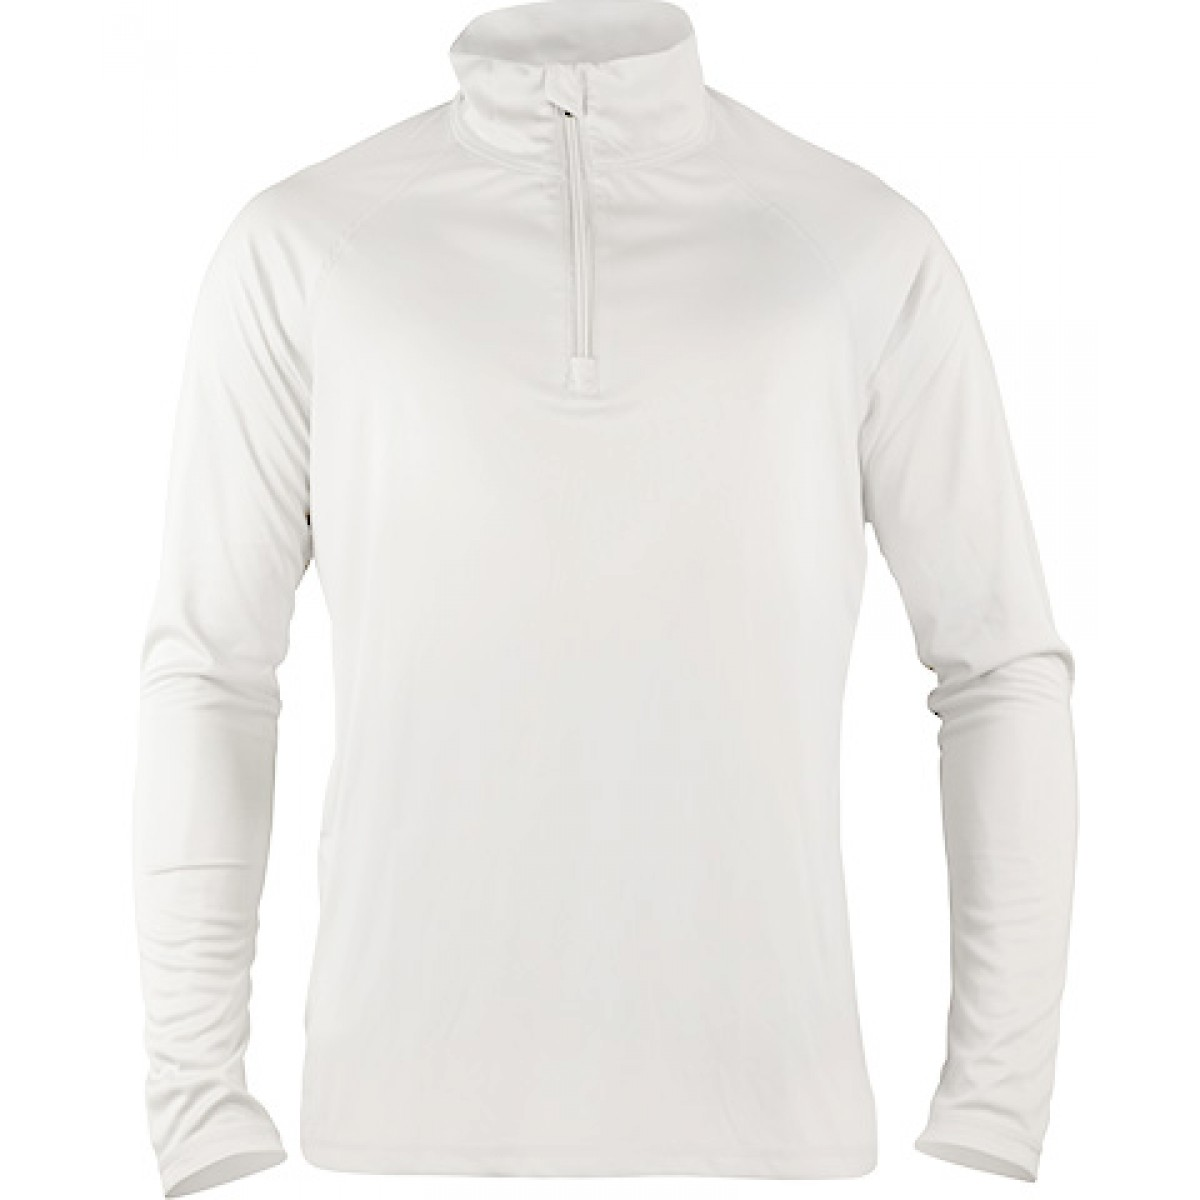 Quarter-Zip Lightweight Pullover-White-2XL